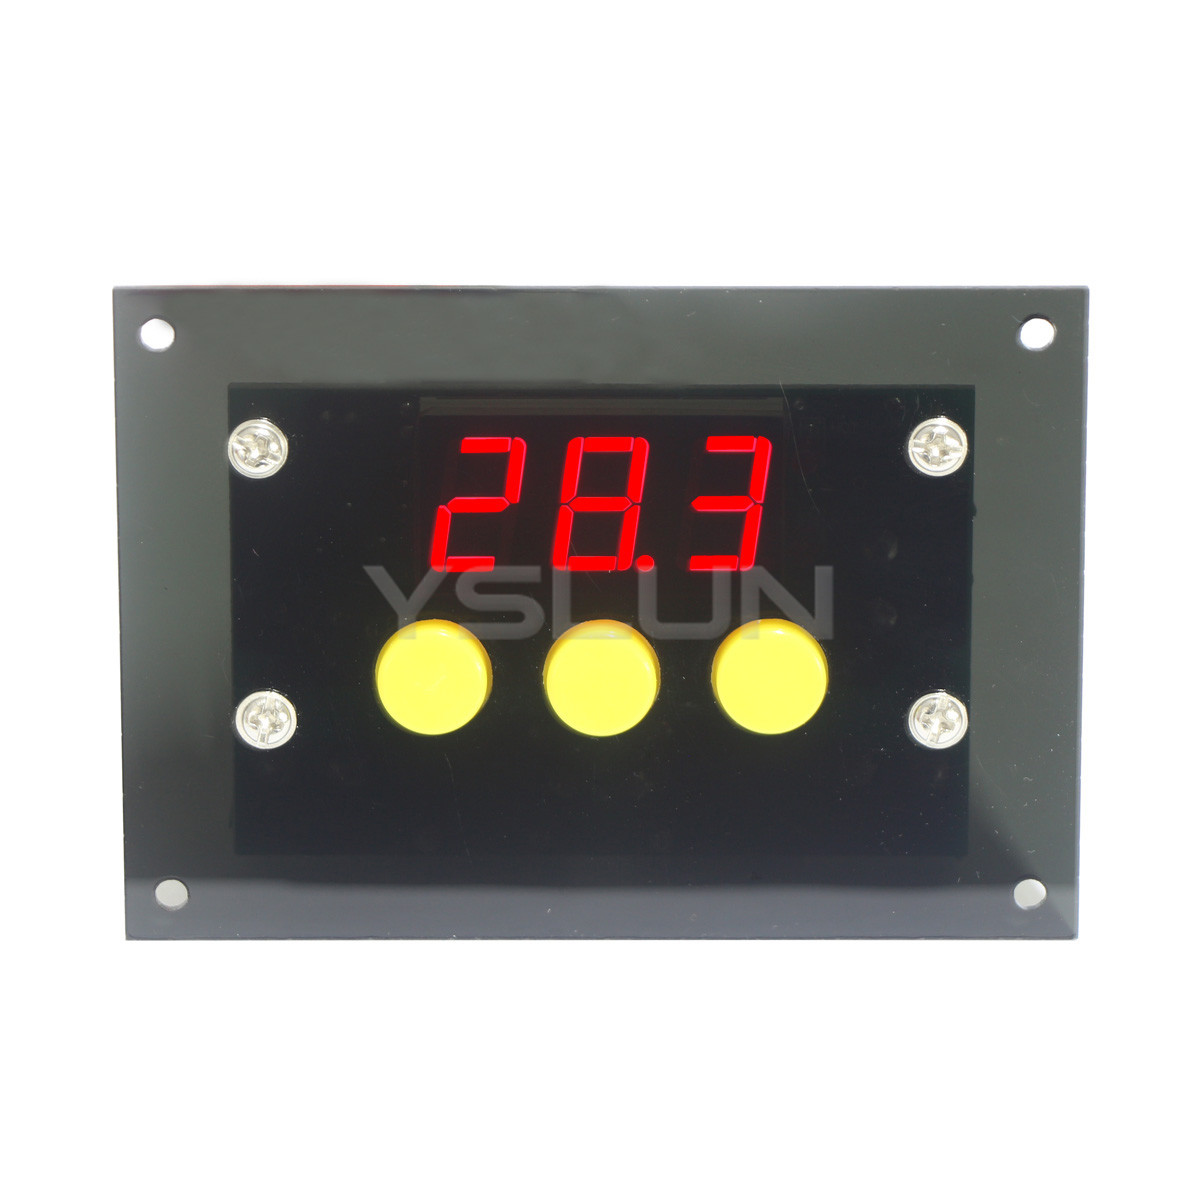 Digital Thermostat -50~110 Celsius Degrees Temp Controller DC/AC 12V Temperature Difference Control Switch  -  Yslun Electronic - Manufacturer store